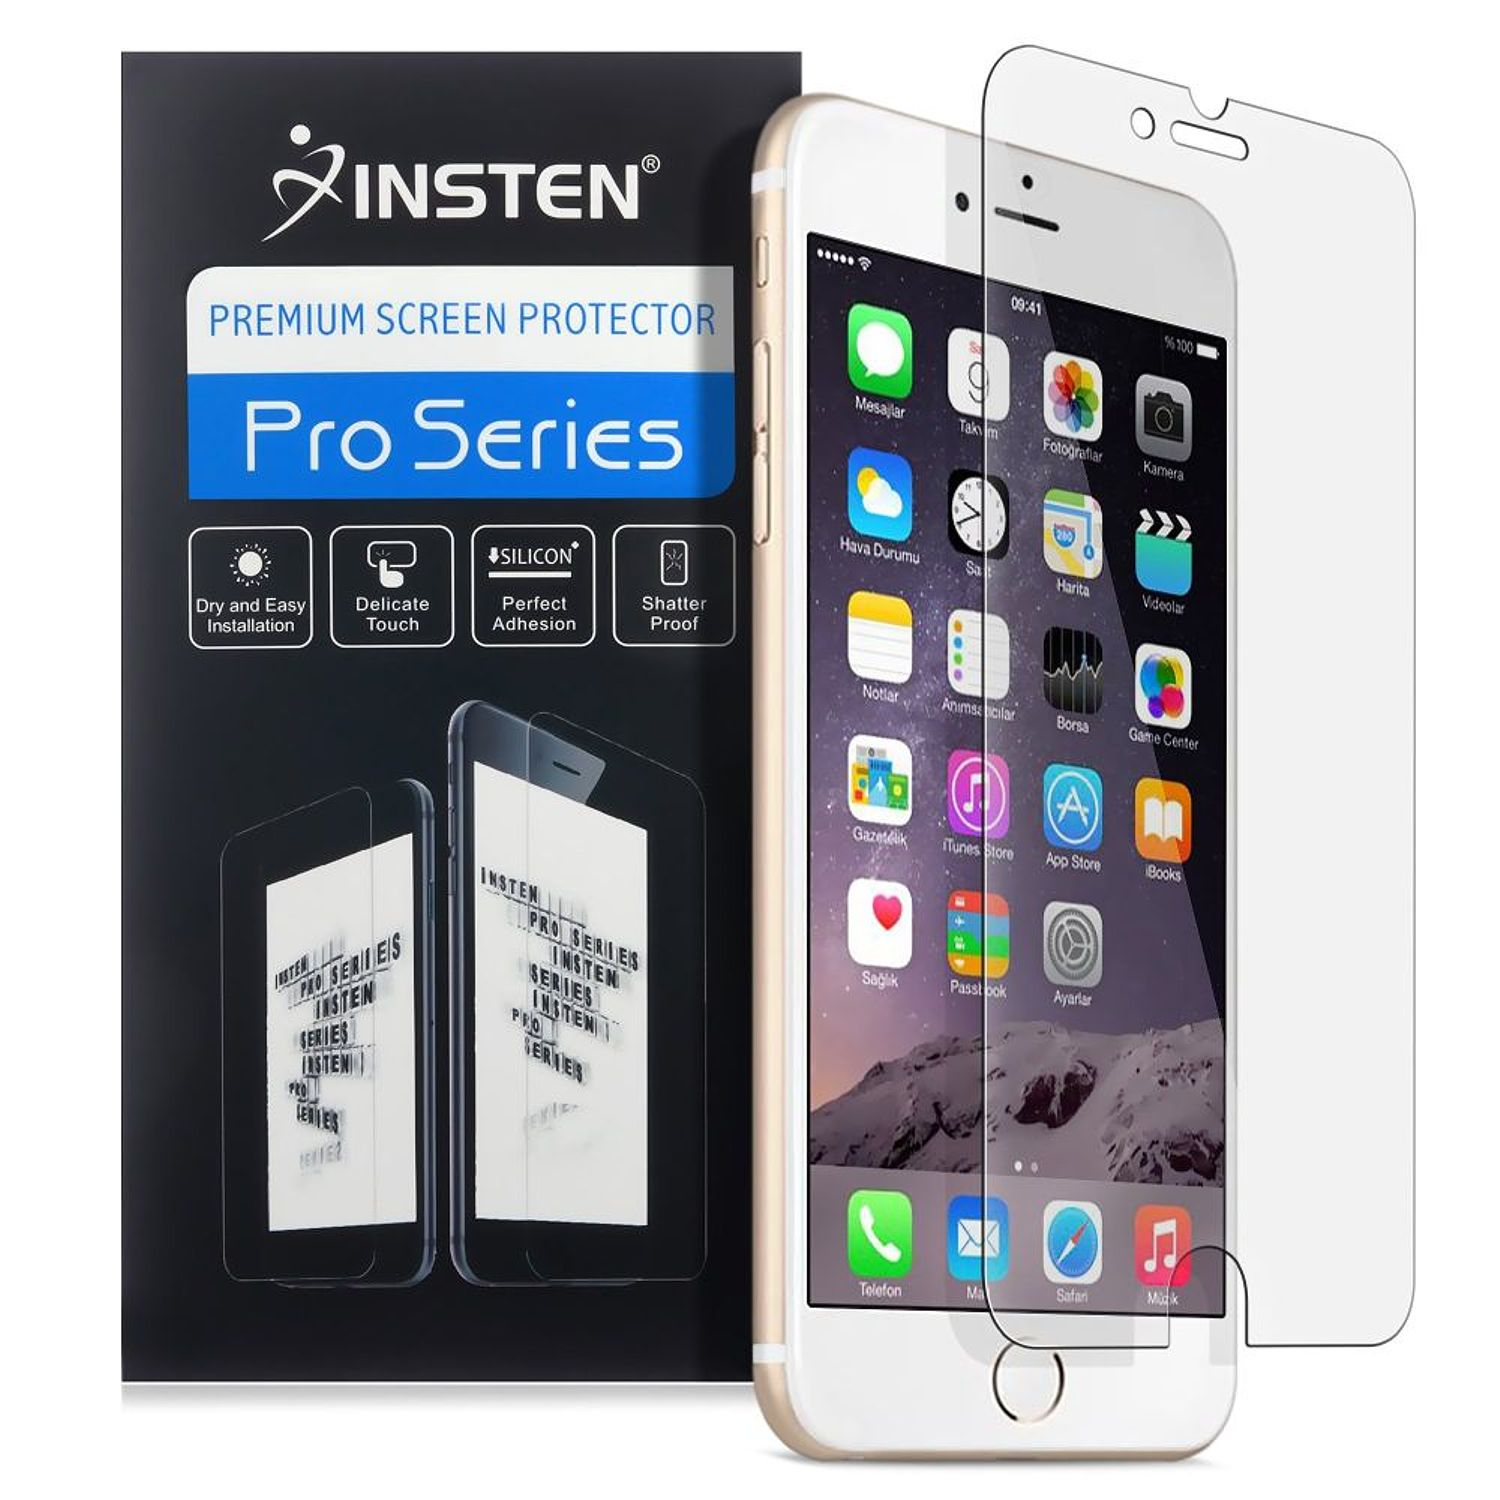 "Screen Protector For iPhone 8 Plus, iPhone 7 Plus Protector, by Insten Ultra Clear Transparent Screen Protector For Apple iPhone 8 Plus / iPhone 7 Plus (5.5"")"